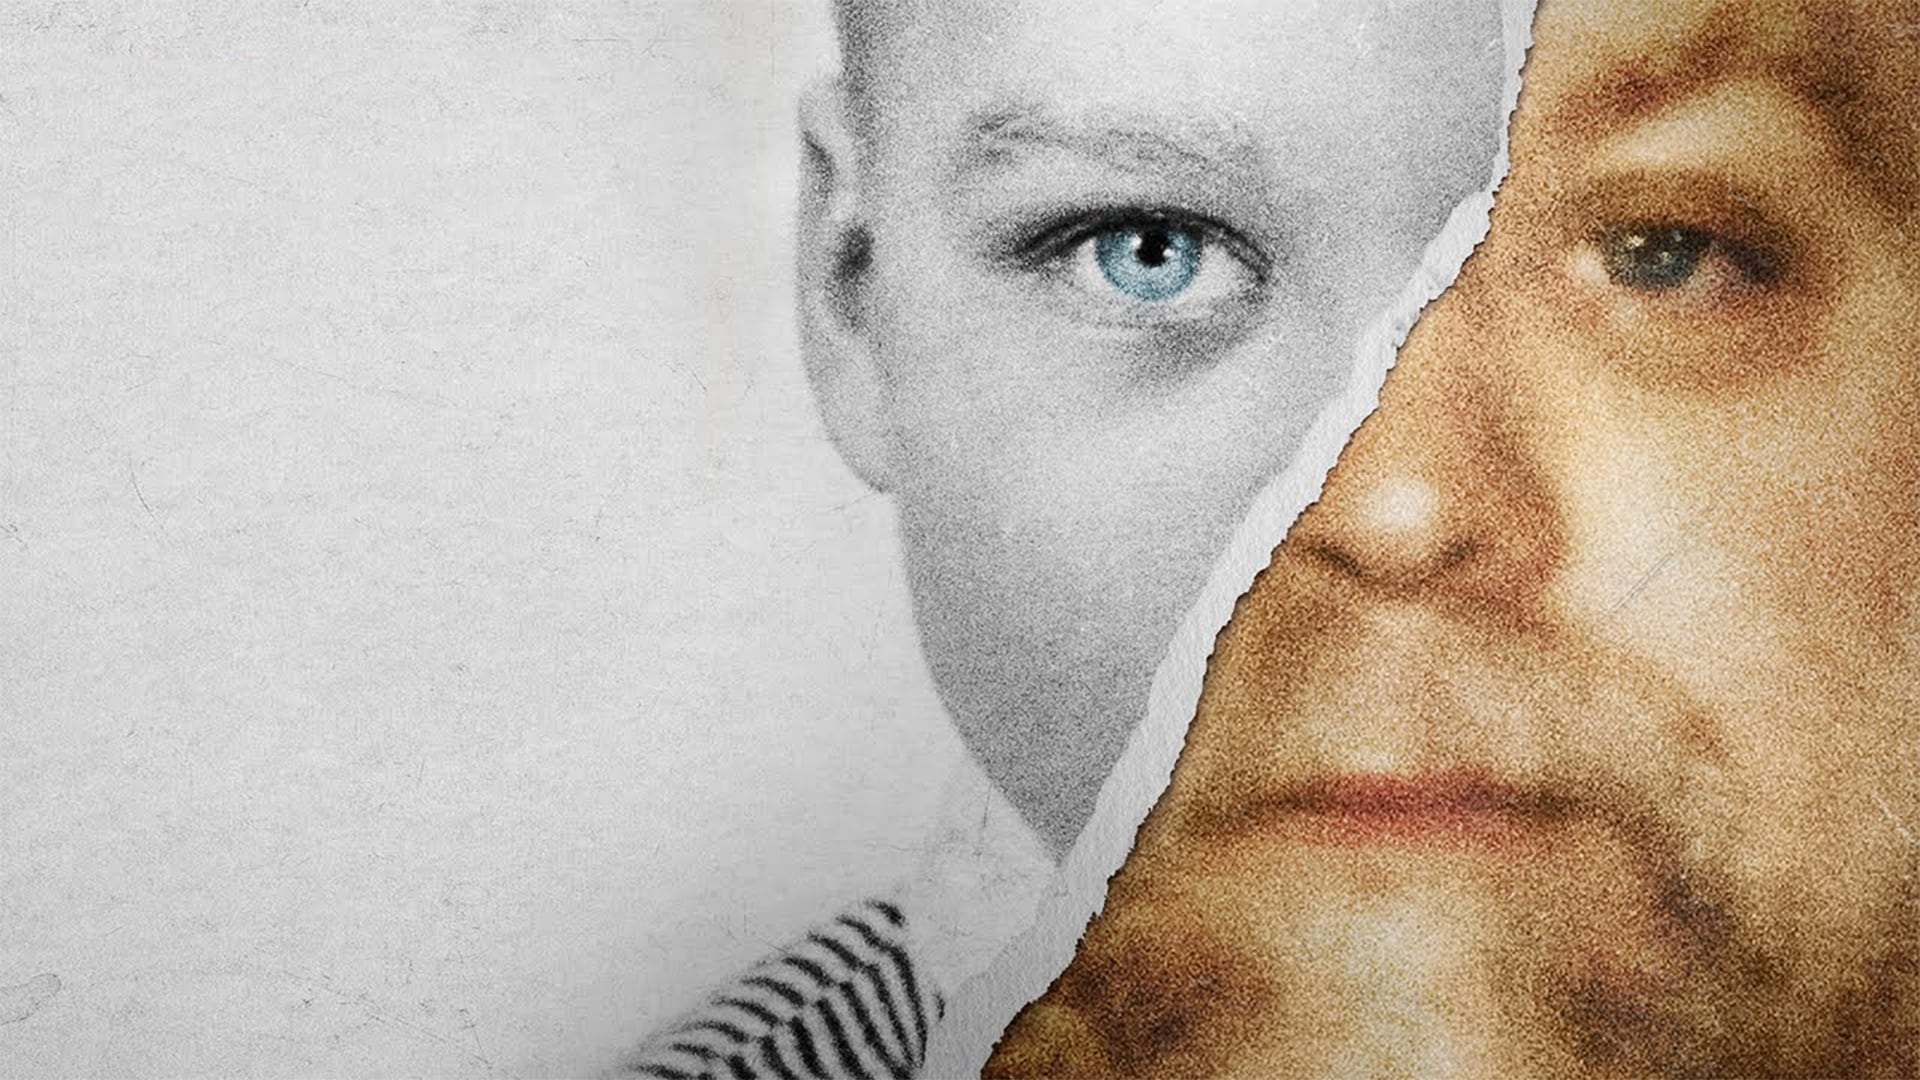 Filmed over a 10-year period, Making a Murderer is an unprecedented real-life thriller about Steven Avery, a DNA exoneree who, while in the midst of exposing corruption in local law enforcement, finds himself the prime suspect in a grisly new crime. Set in America's heartland, the series takes viewers inside a high-stakes criminal case where reputation is everything and things are never as they appear.